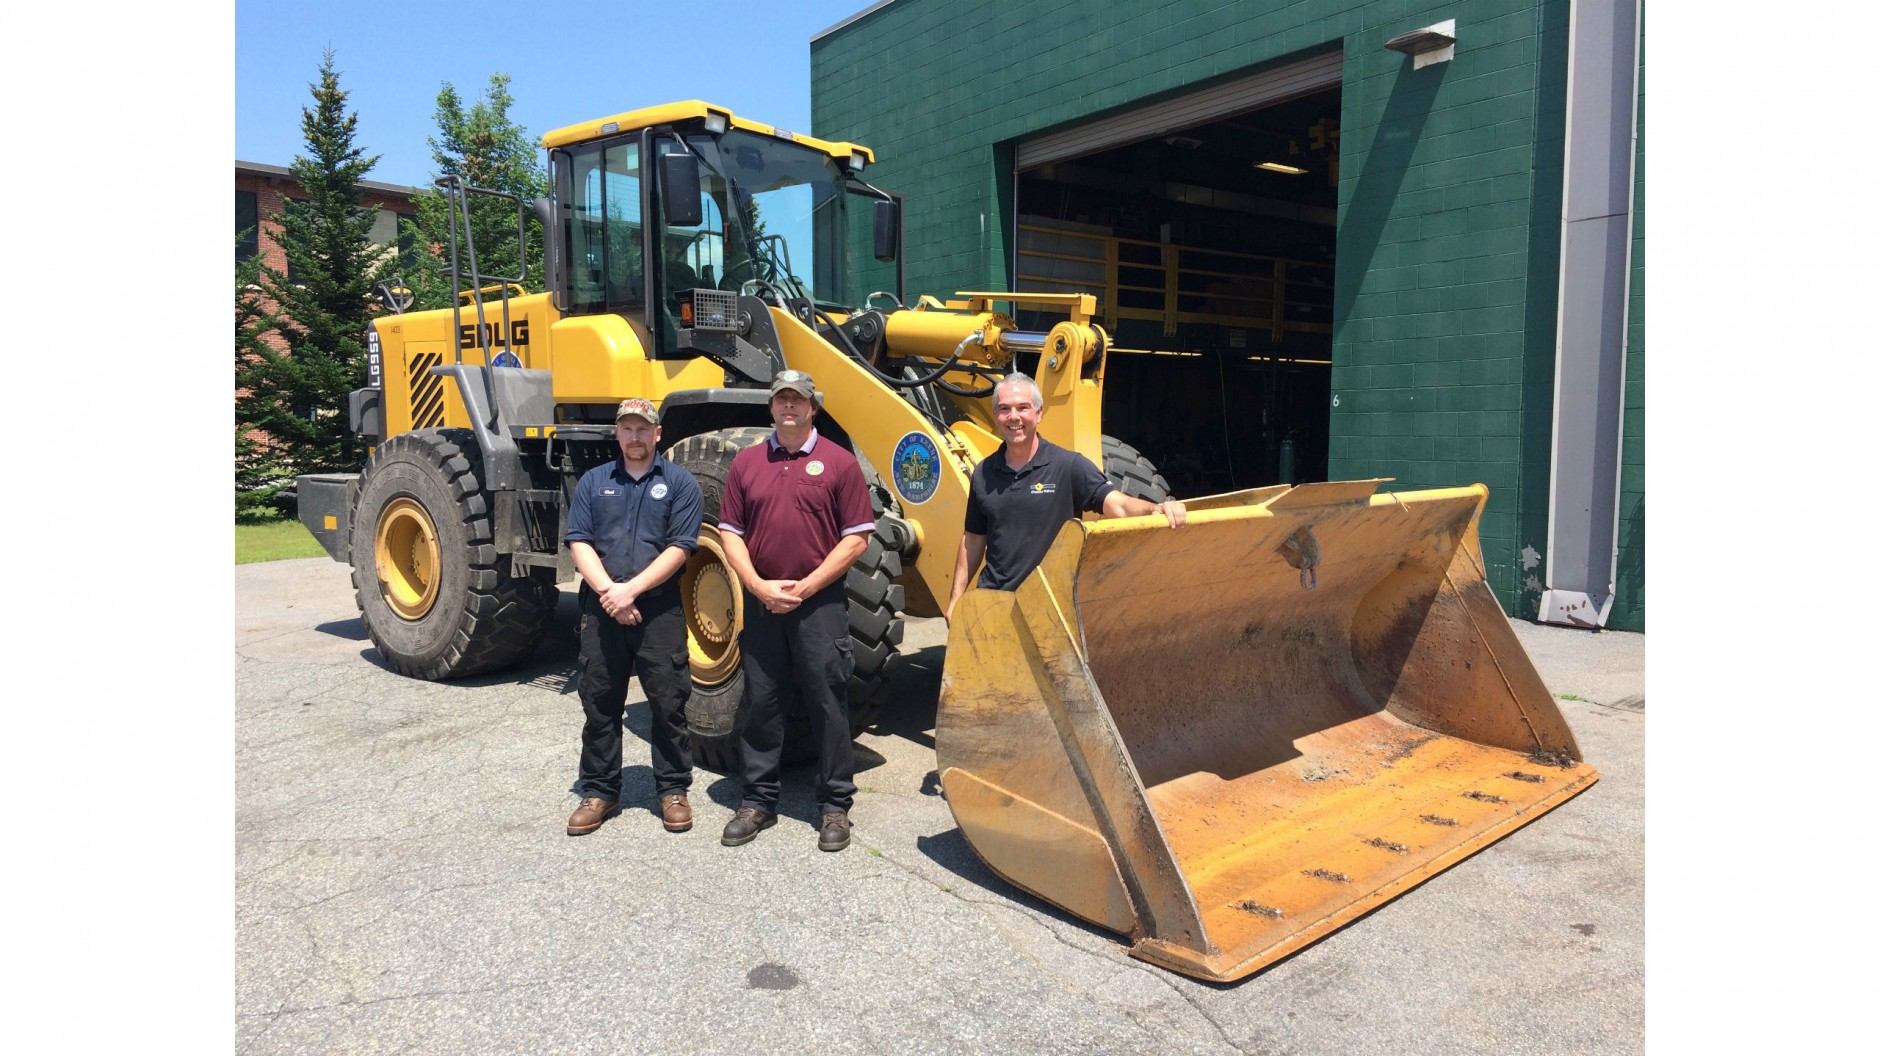 Wheel loader with reliable and intuitive design wins over municipal owners